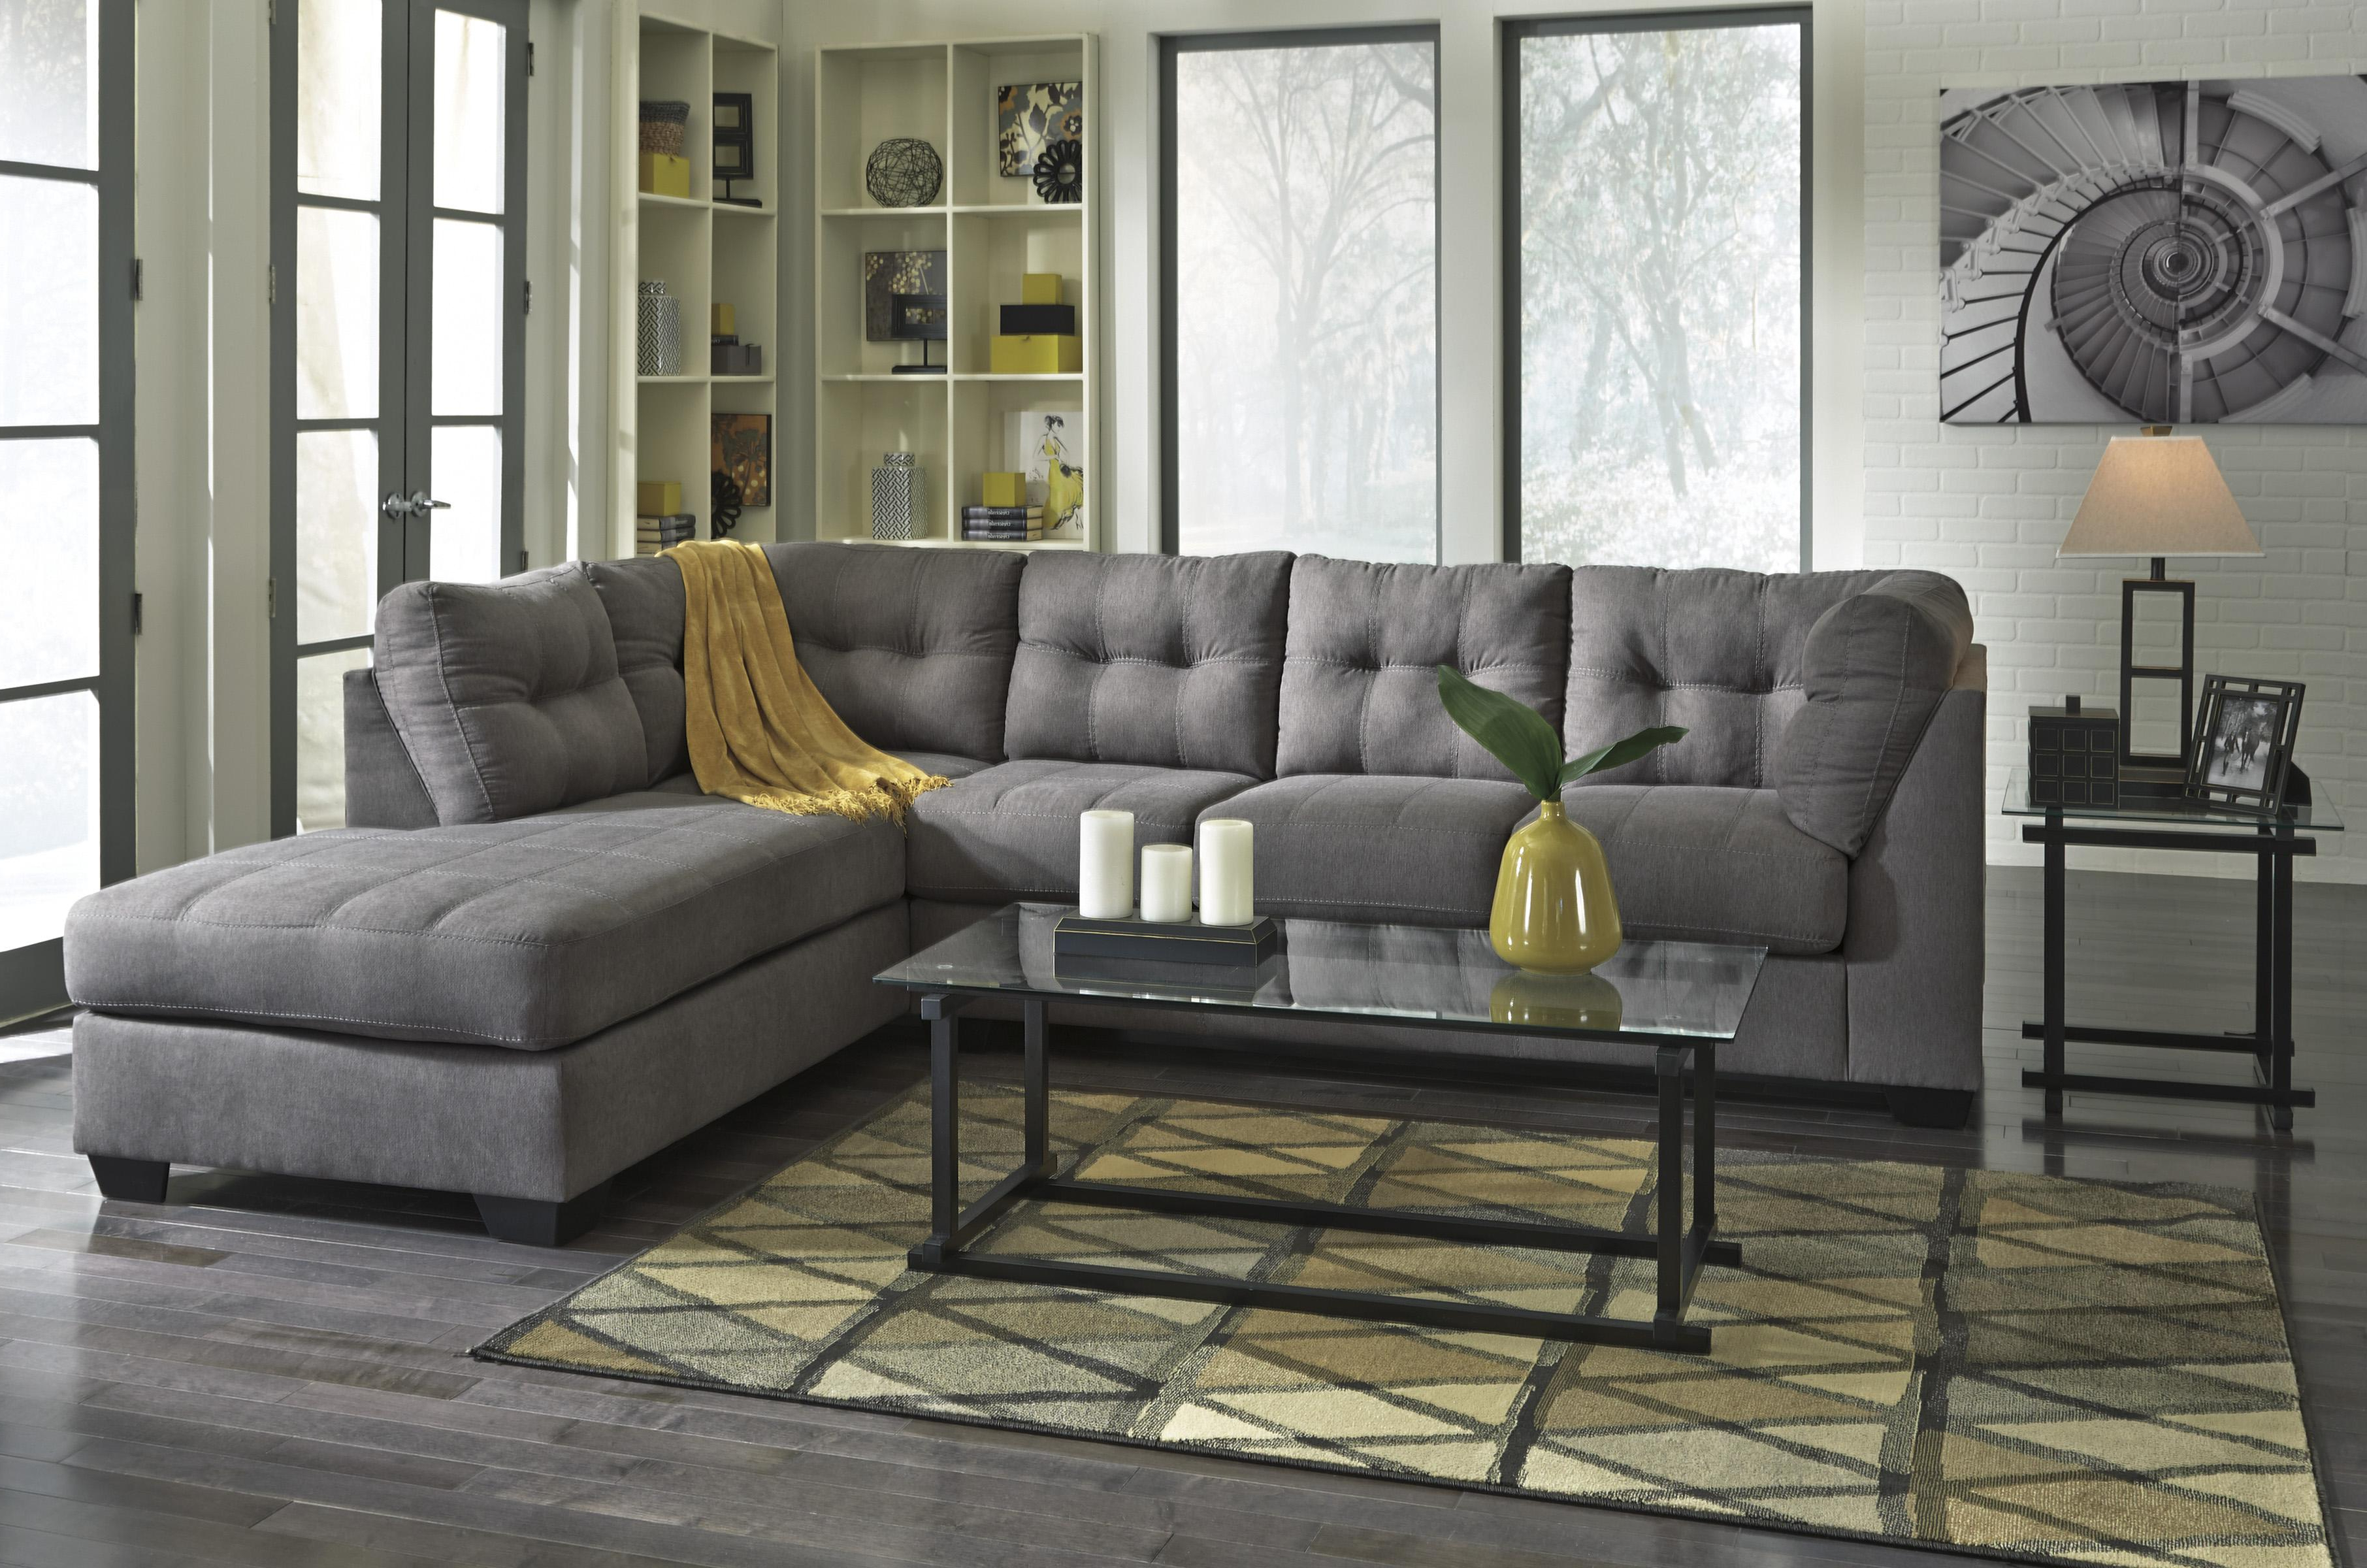 Fashionable Piece Sectional With Right Chaise Benchcraft Wolf And Products Color Regarding Aspen 2 Piece Sleeper Sectionals With Raf Chaise (View 13 of 20)